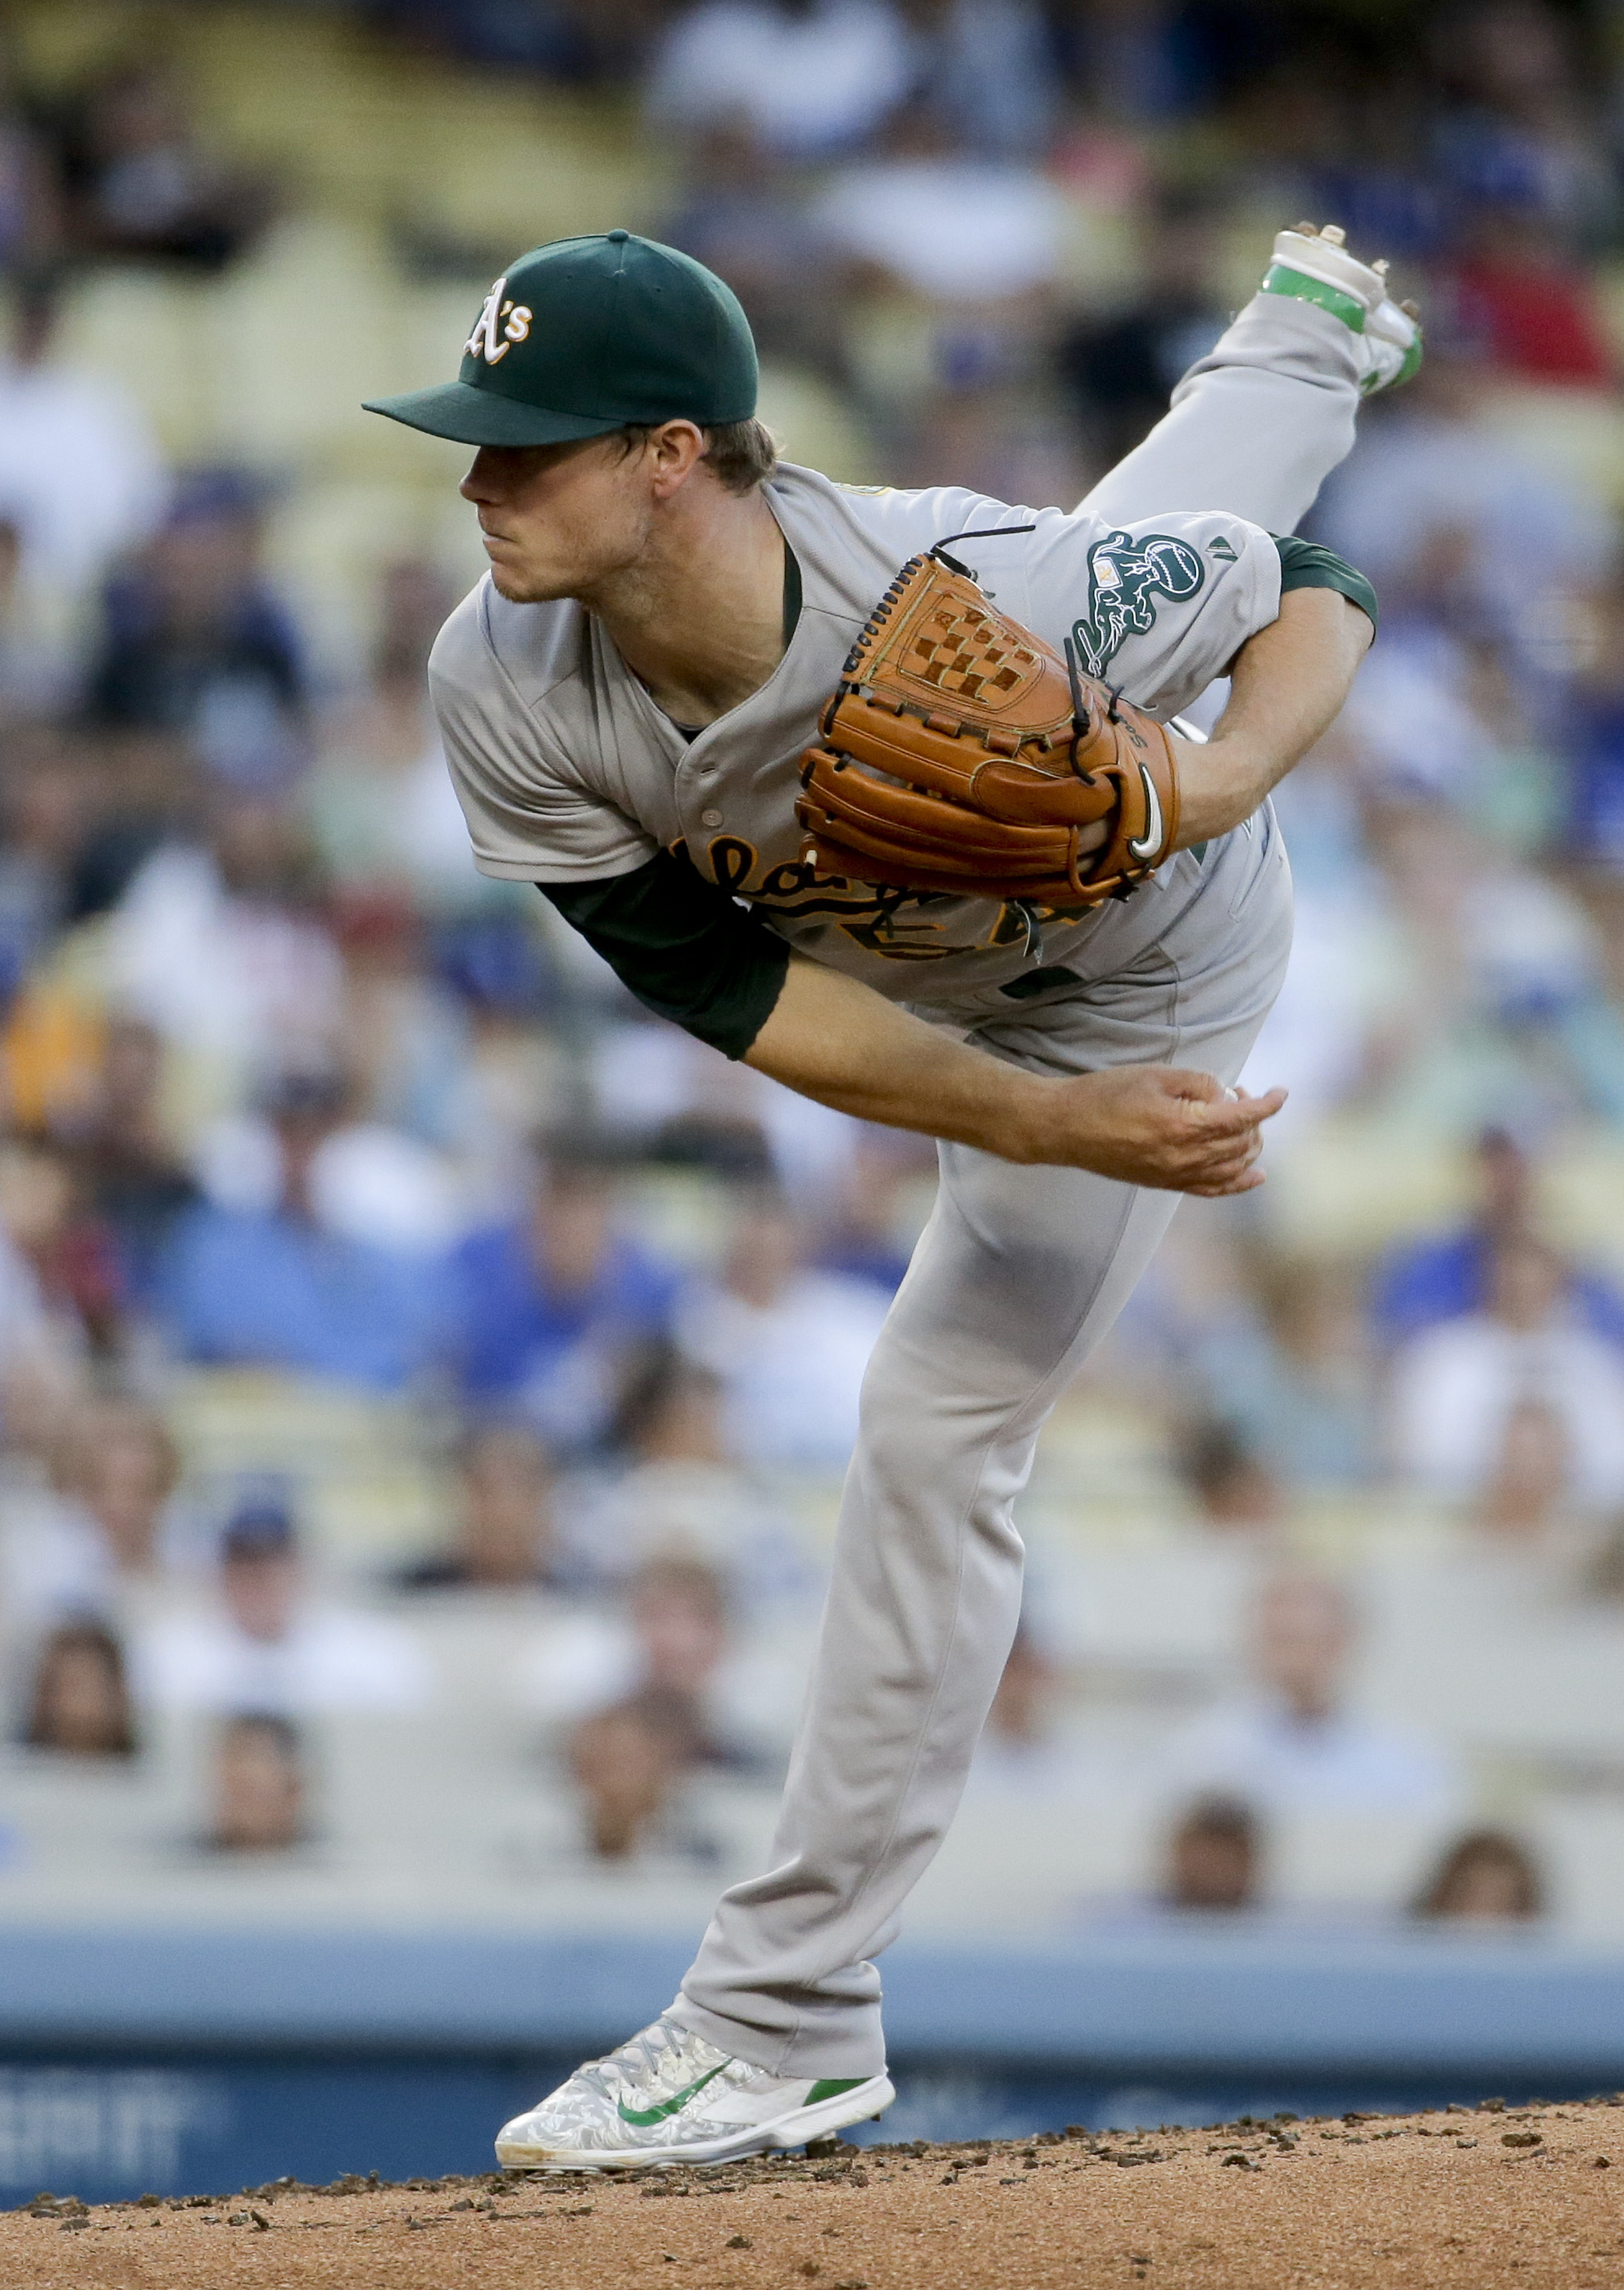 Oakland Athletics starting pitcher Sonny Gray throws against the Los Angeles Dodgers during the first inning of a baseball game in Los Angeles, Tuesday, July 28, 2015. (AP Photo/Chris Carlson)